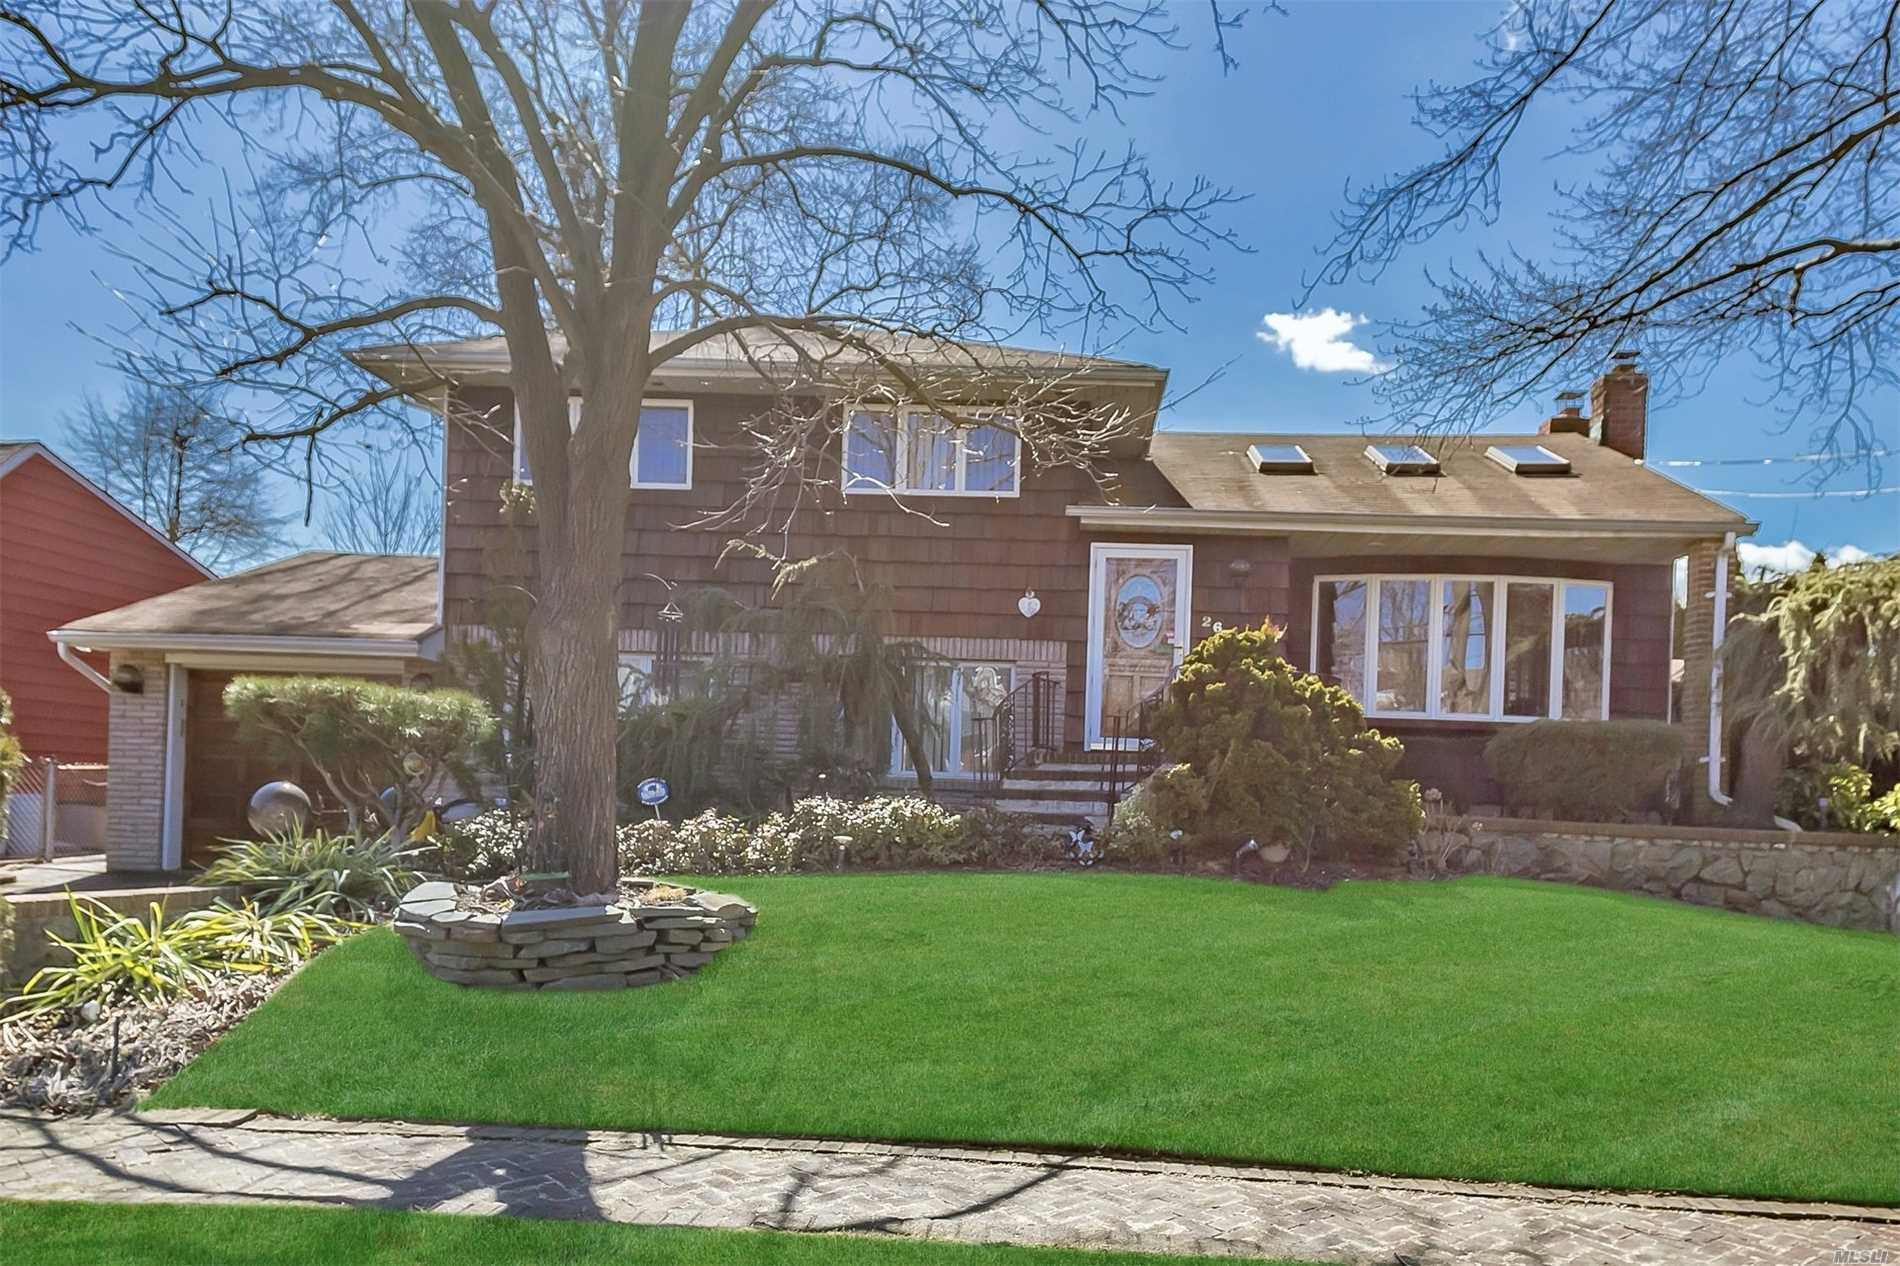 Spacious Split Mid Block Location, Featuring 4 Bedrooms, Bright Bonus Rm w/Fireplace, Huge Eat In Kitchen, Hardwood Floors, Fireplace In Basement Too, Large Cedar Closet, French Doors to Outside Entertainers Delight Backyard featuring Water Fountain, Dead End Street, A Must See!